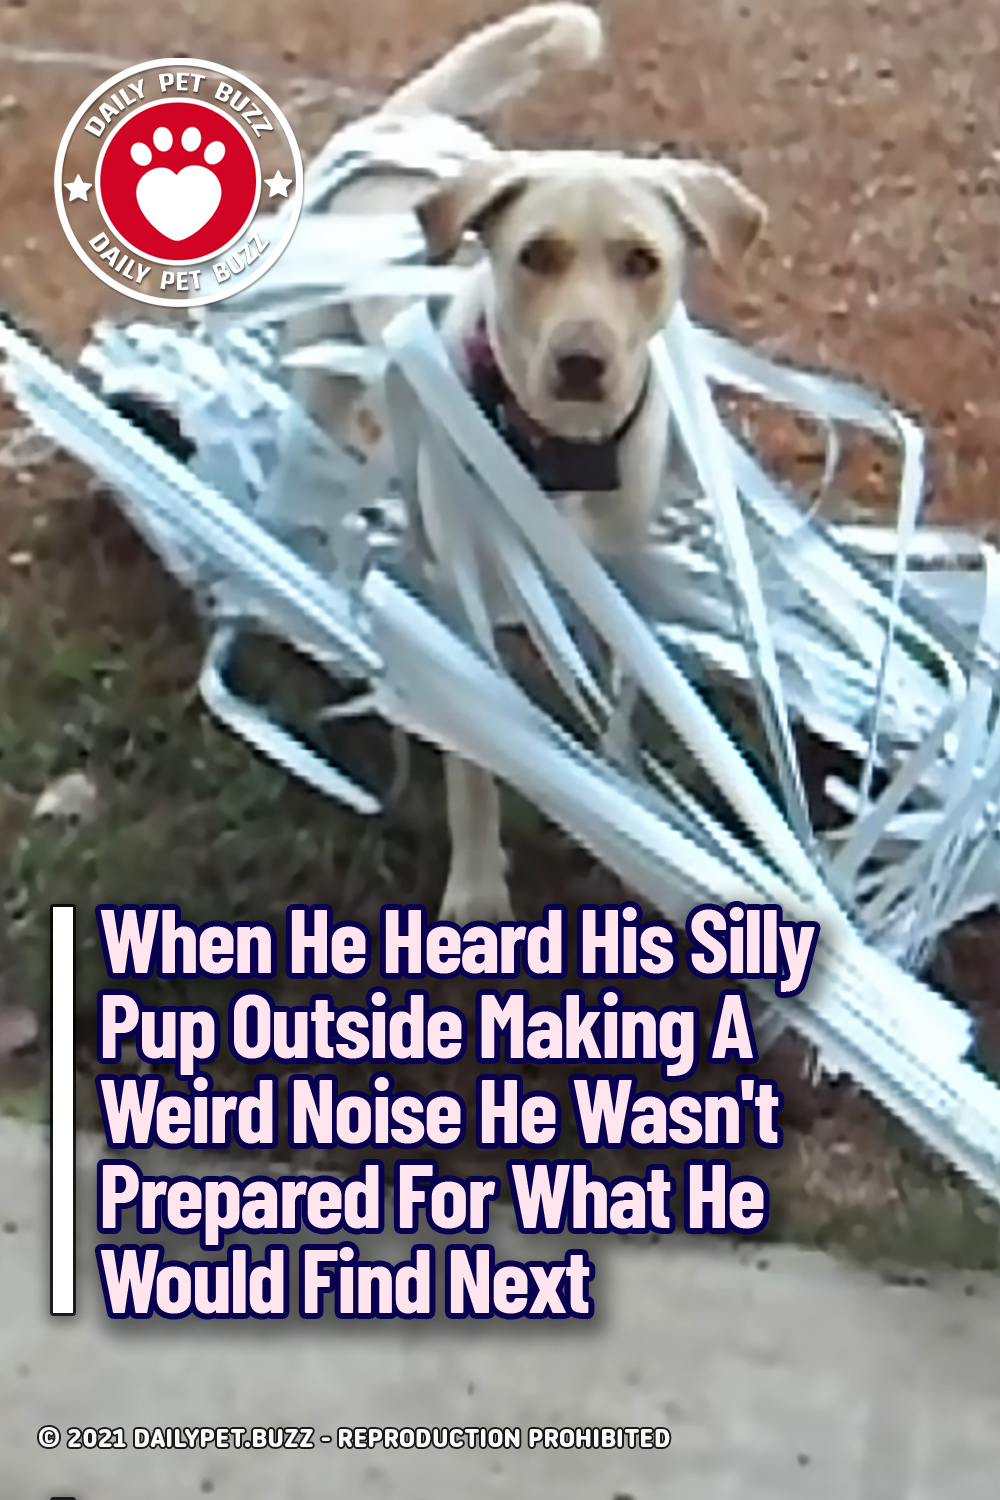 When He Heard His Silly Pup Outside Making A Weird Noise He Wasn\'t Prepared For What He Would Find Next